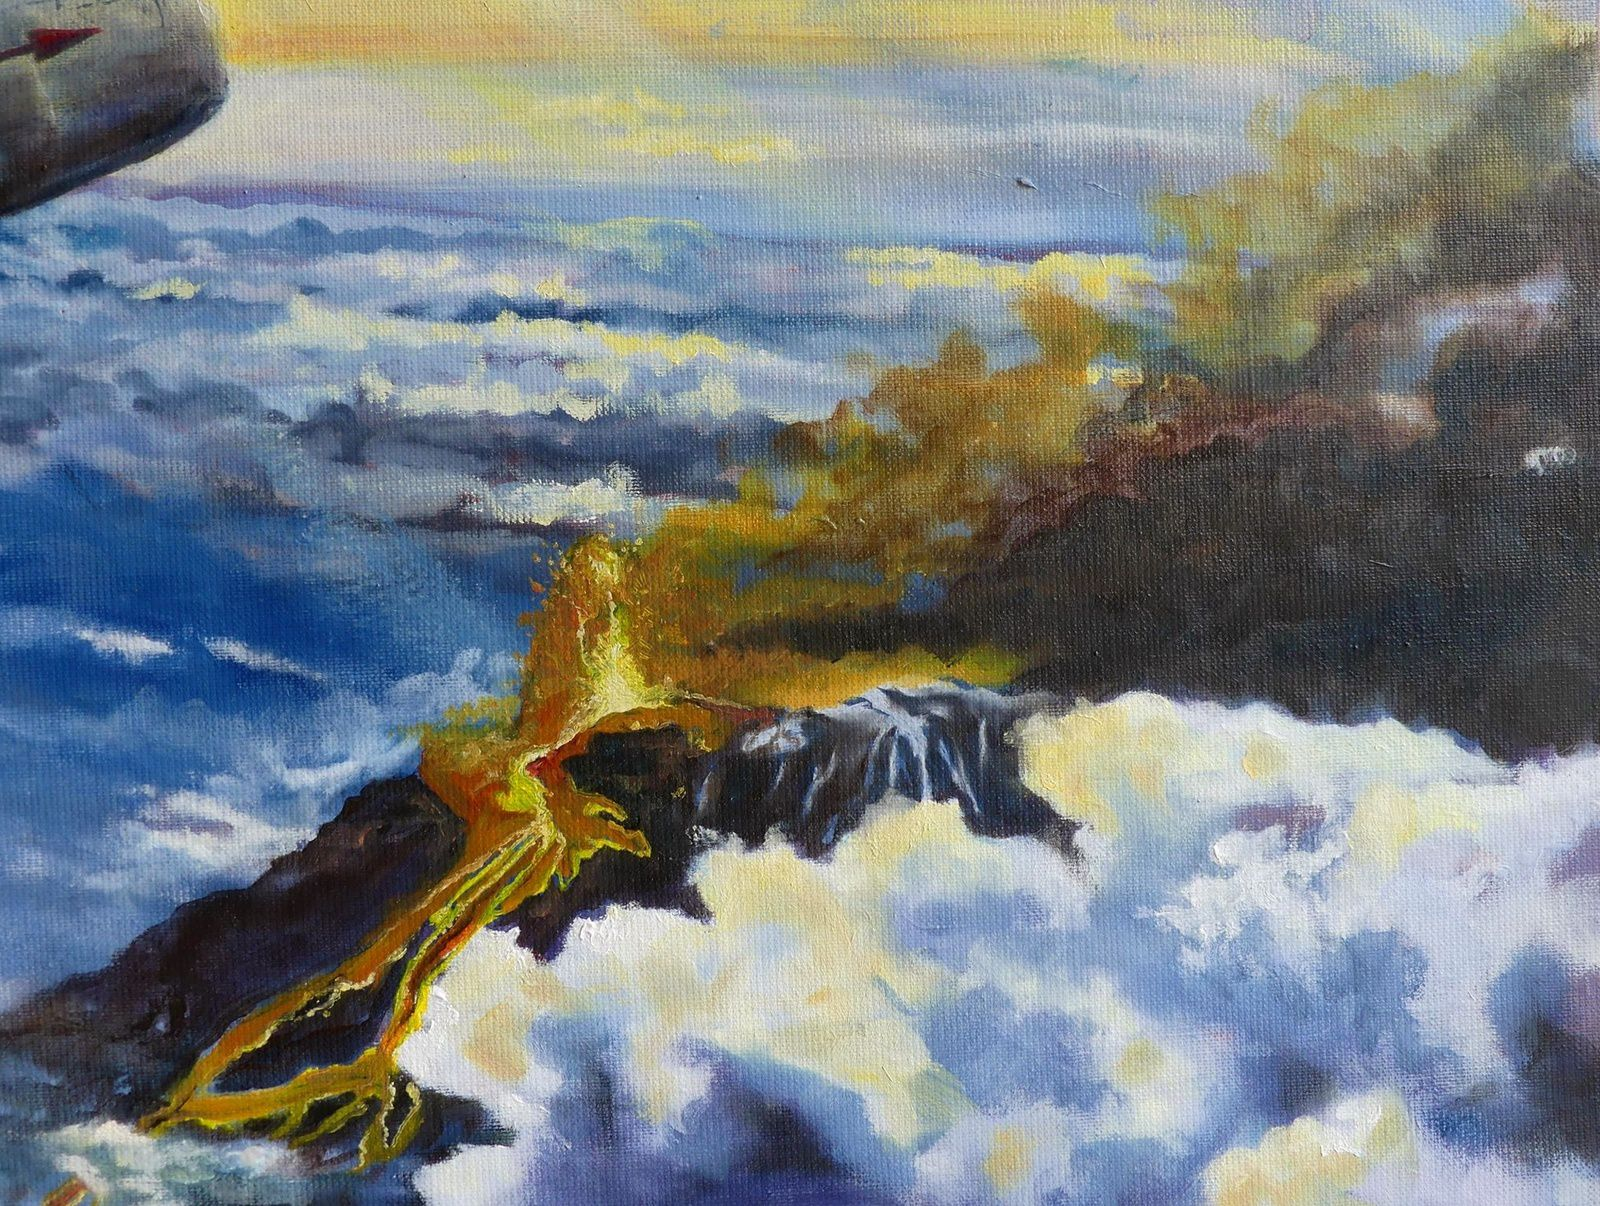 """Interception on eruption"", painting on canvas by Jocelyn Lardy - detail on a fountain and the lava flow it feeds."